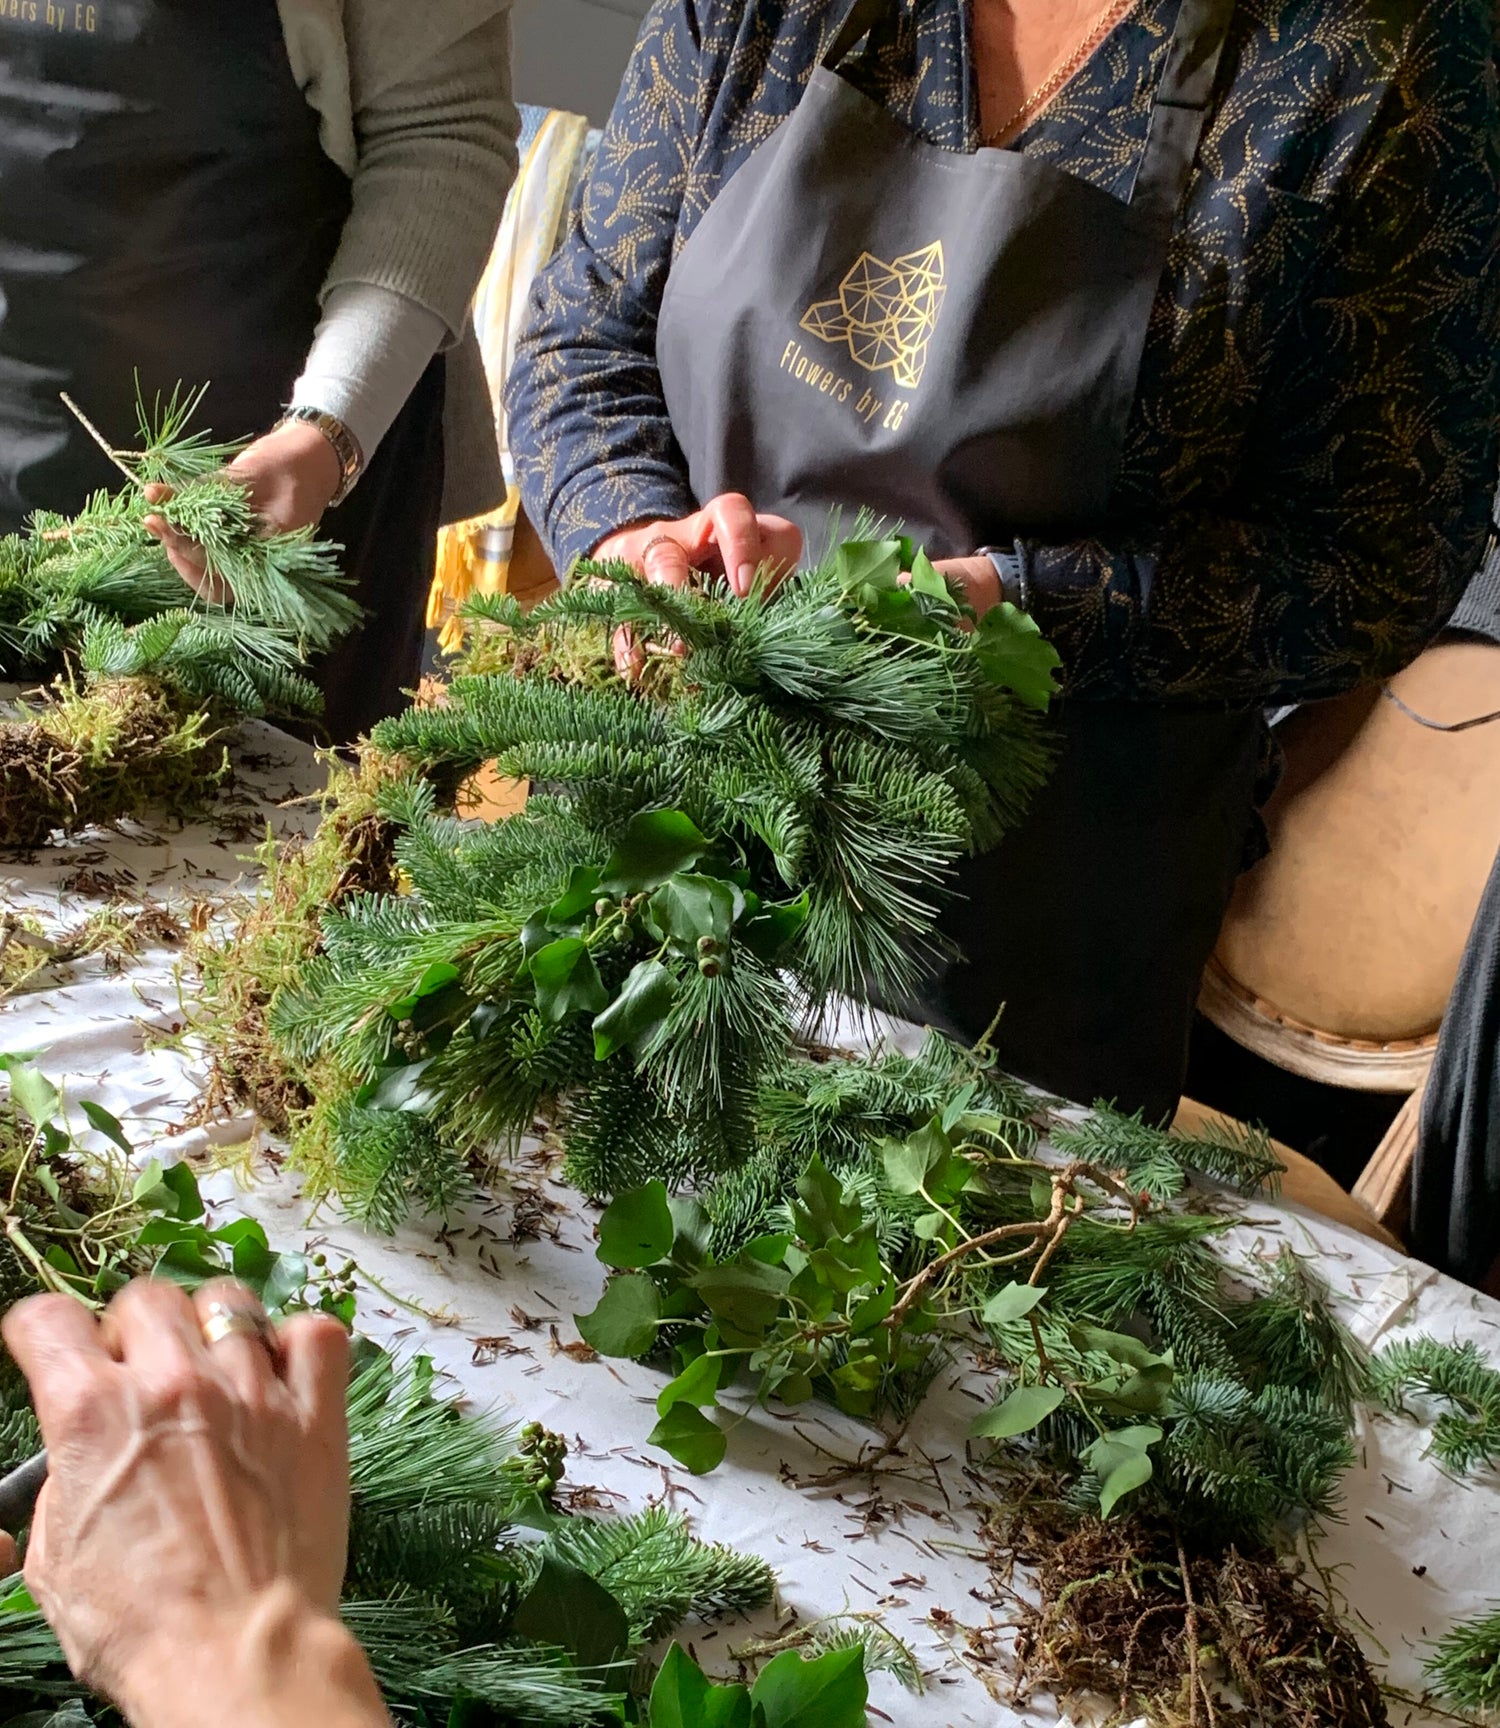 Wine Tasting and Wreath Making For 6 People @ 14:00 on 6th Dec